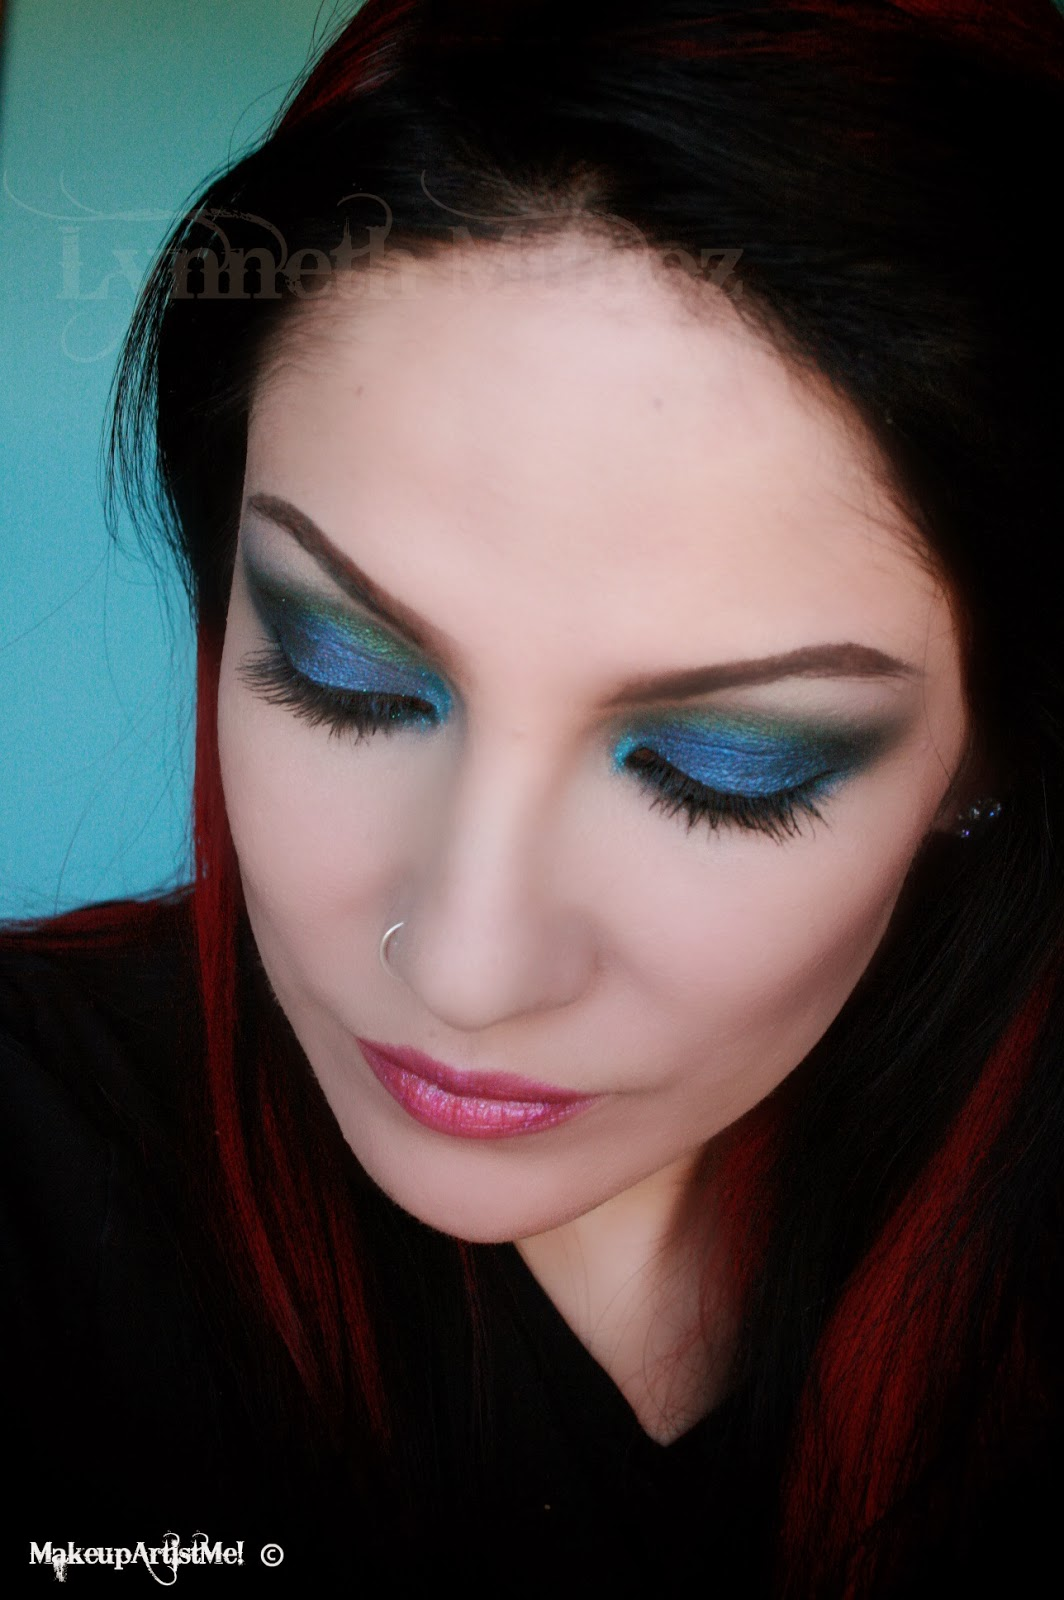 Make Up Tutorials Youtube: Make-up Artist Me!: Peacock Stare